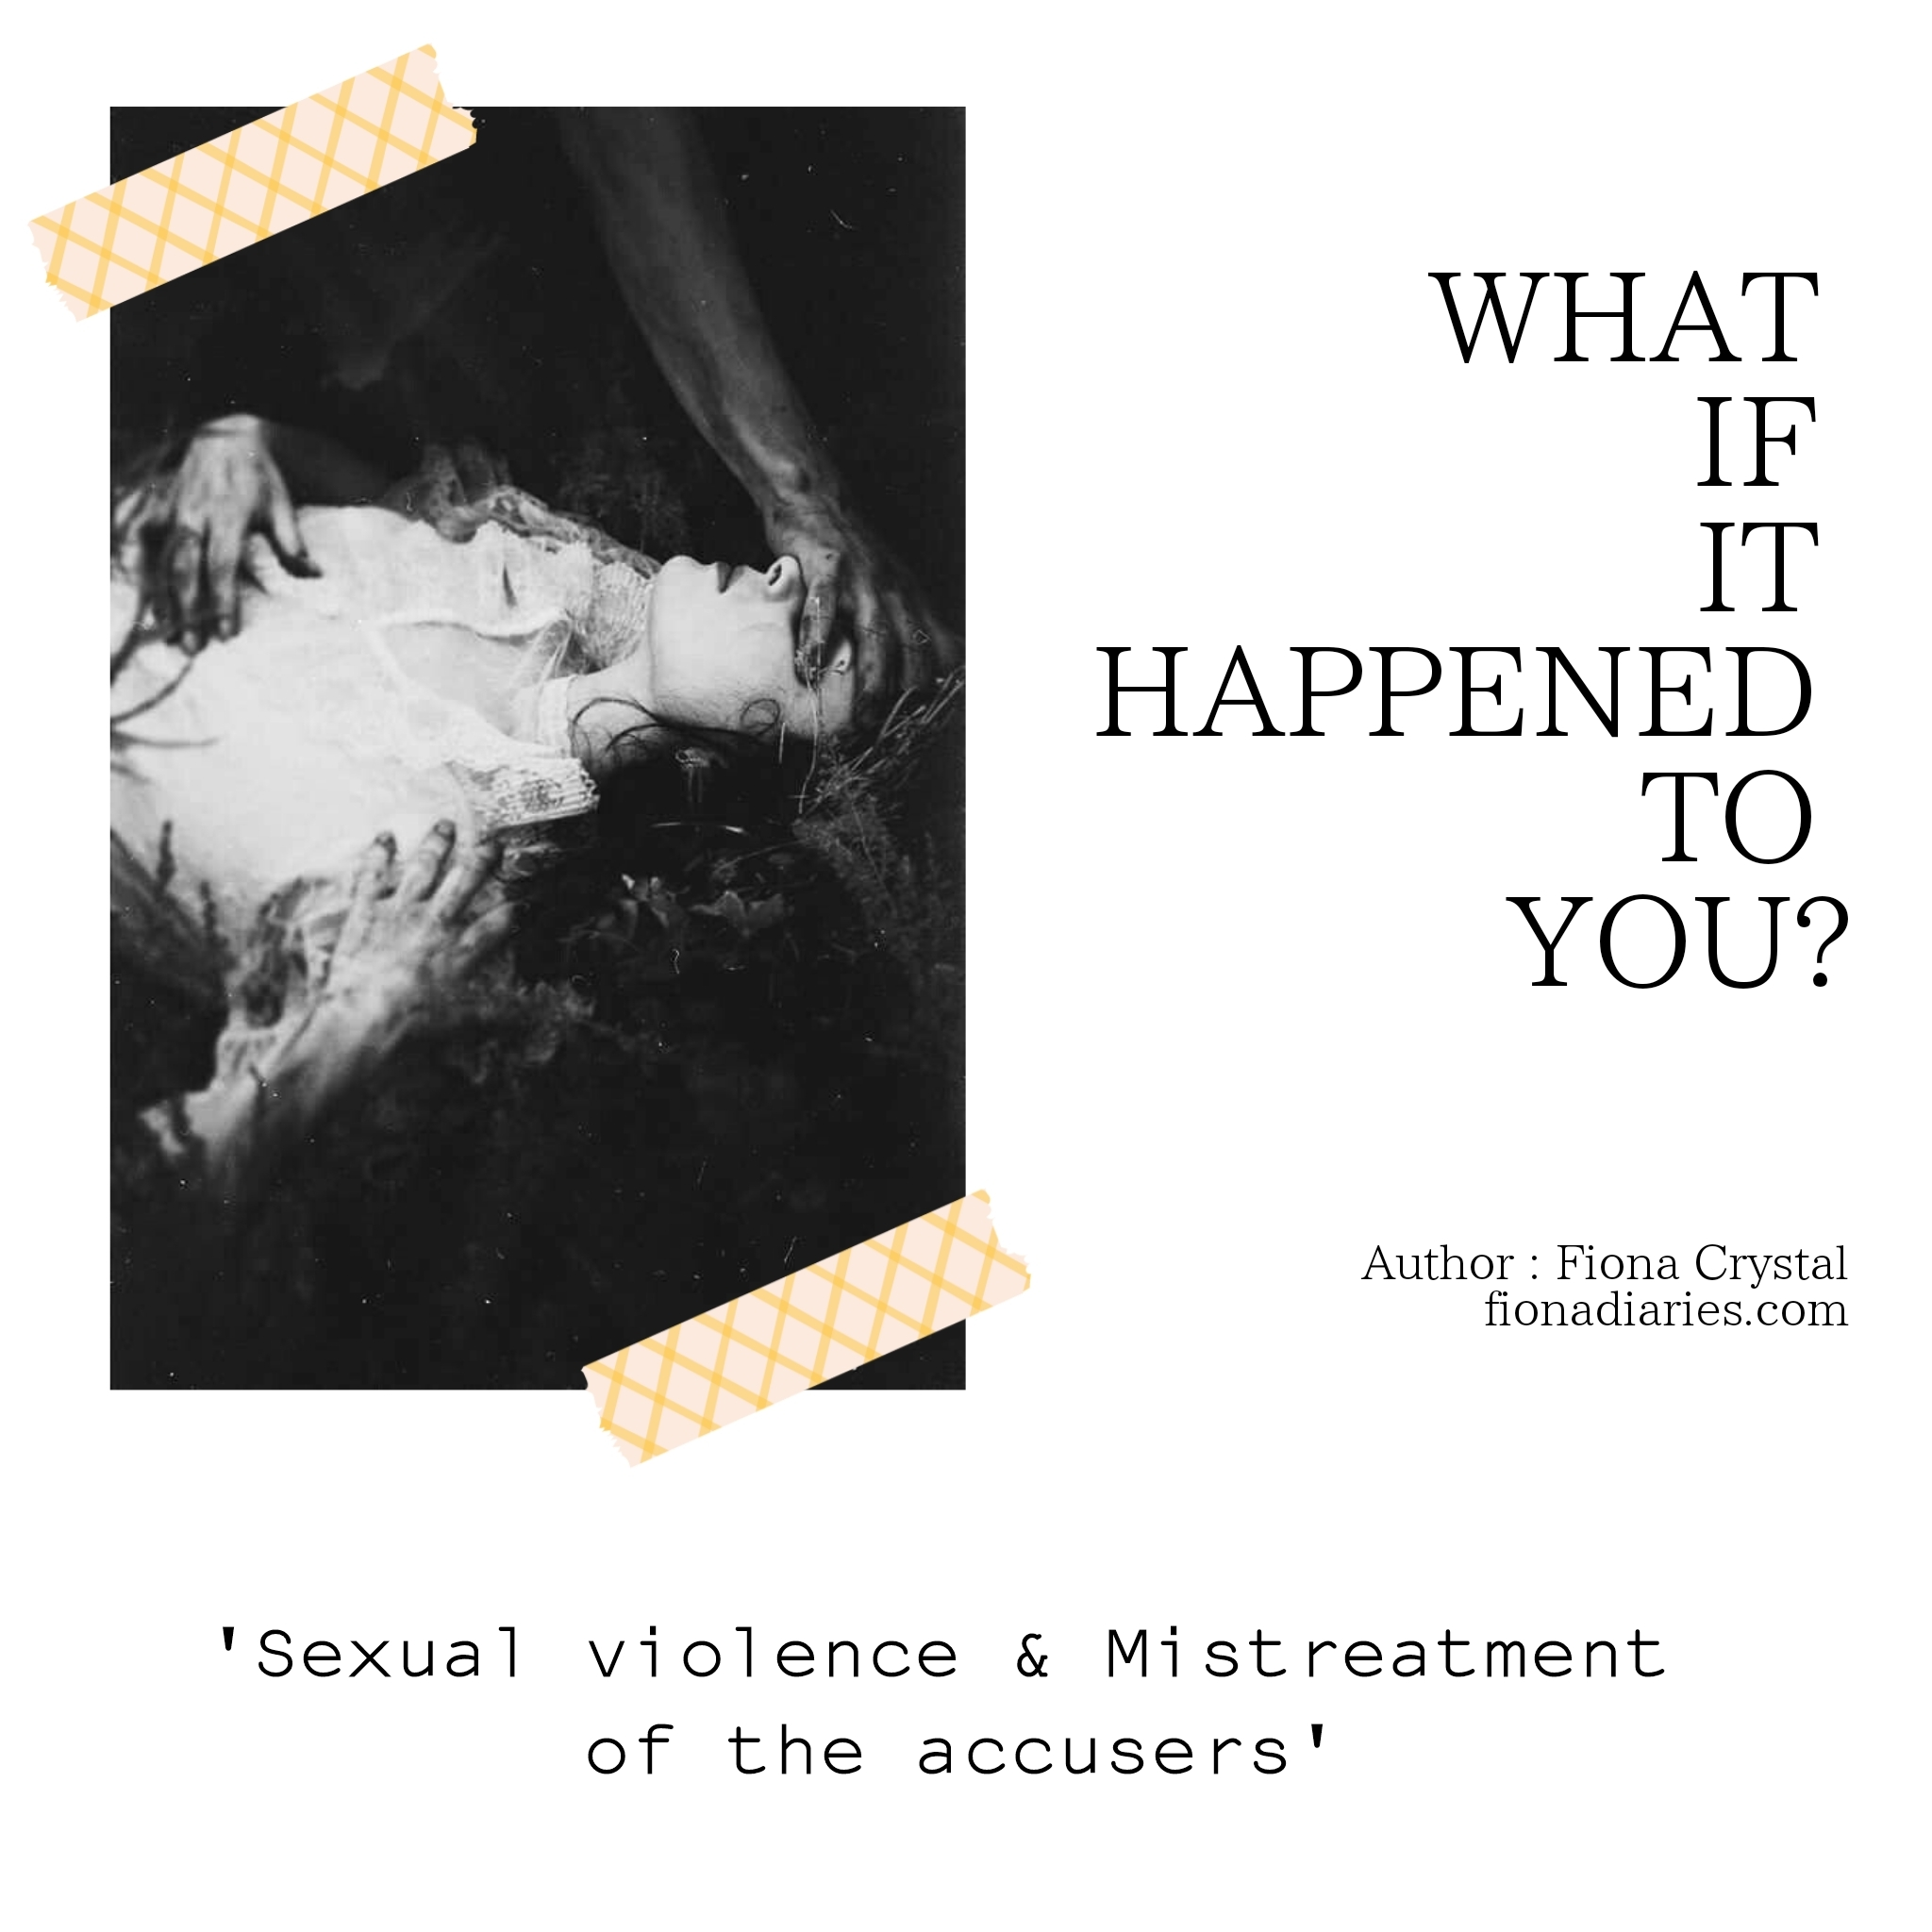 WHAT IF IT HAPPENED TO YOU?  — Sexual Violence & Mistreatment of the accusers